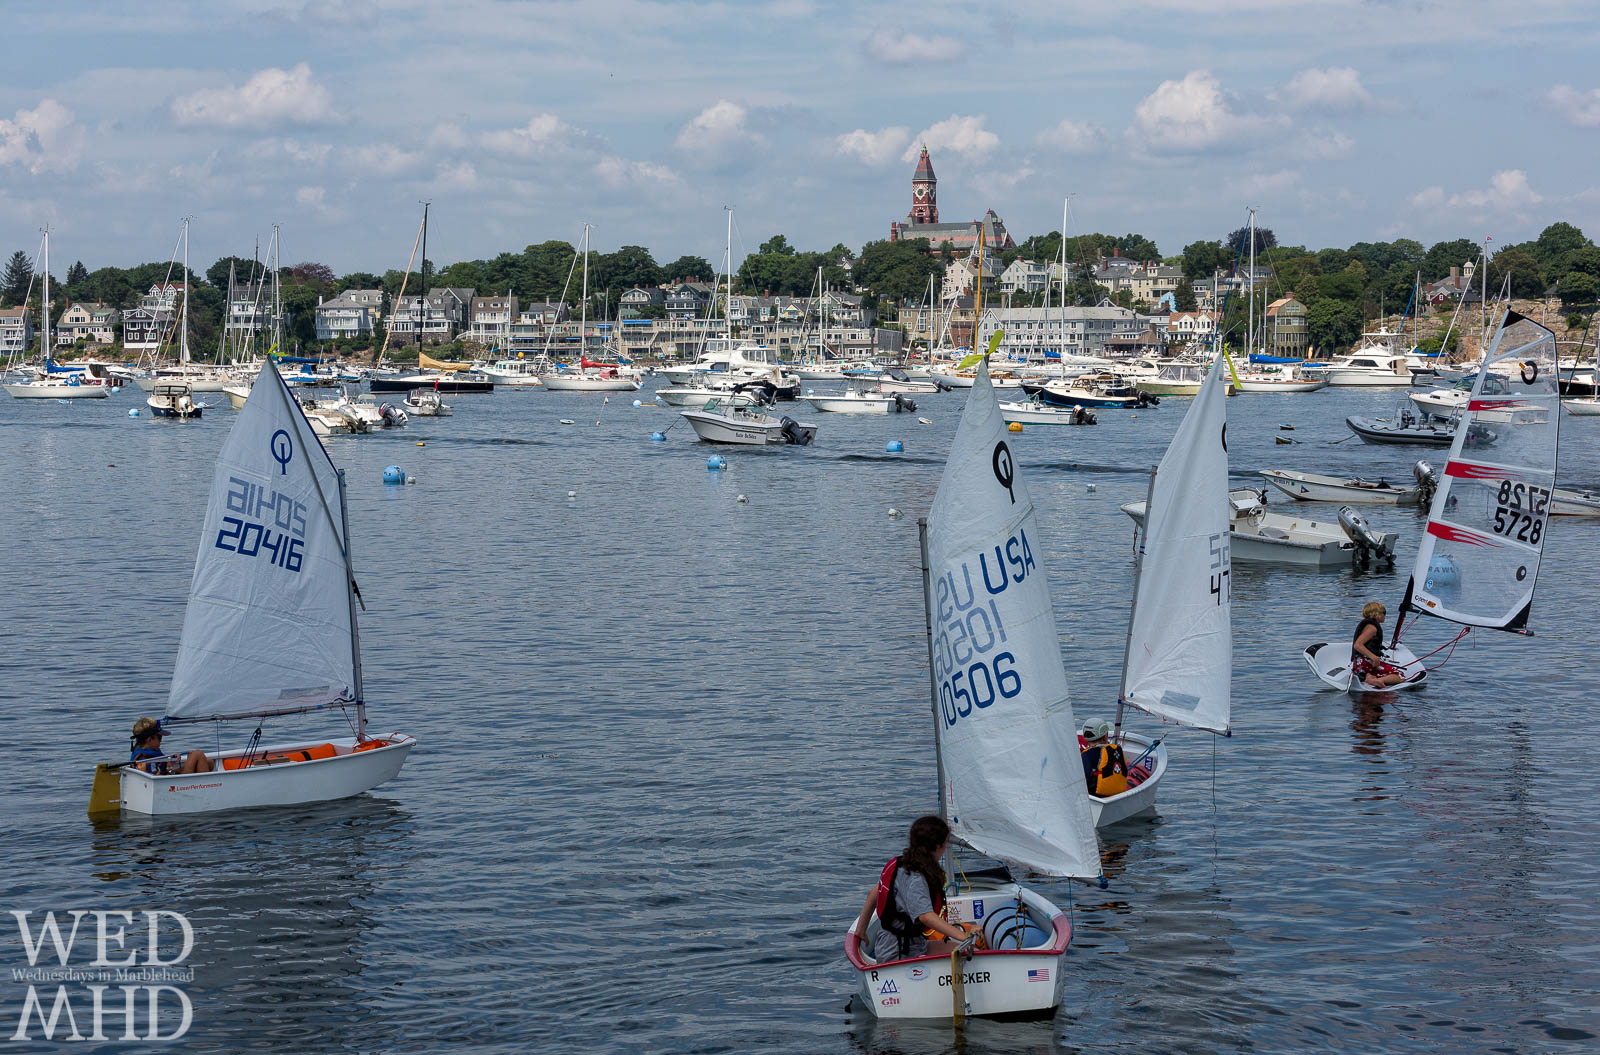 The start of Marblehead Junior Race Week features members of the Pleon heading out in Optis